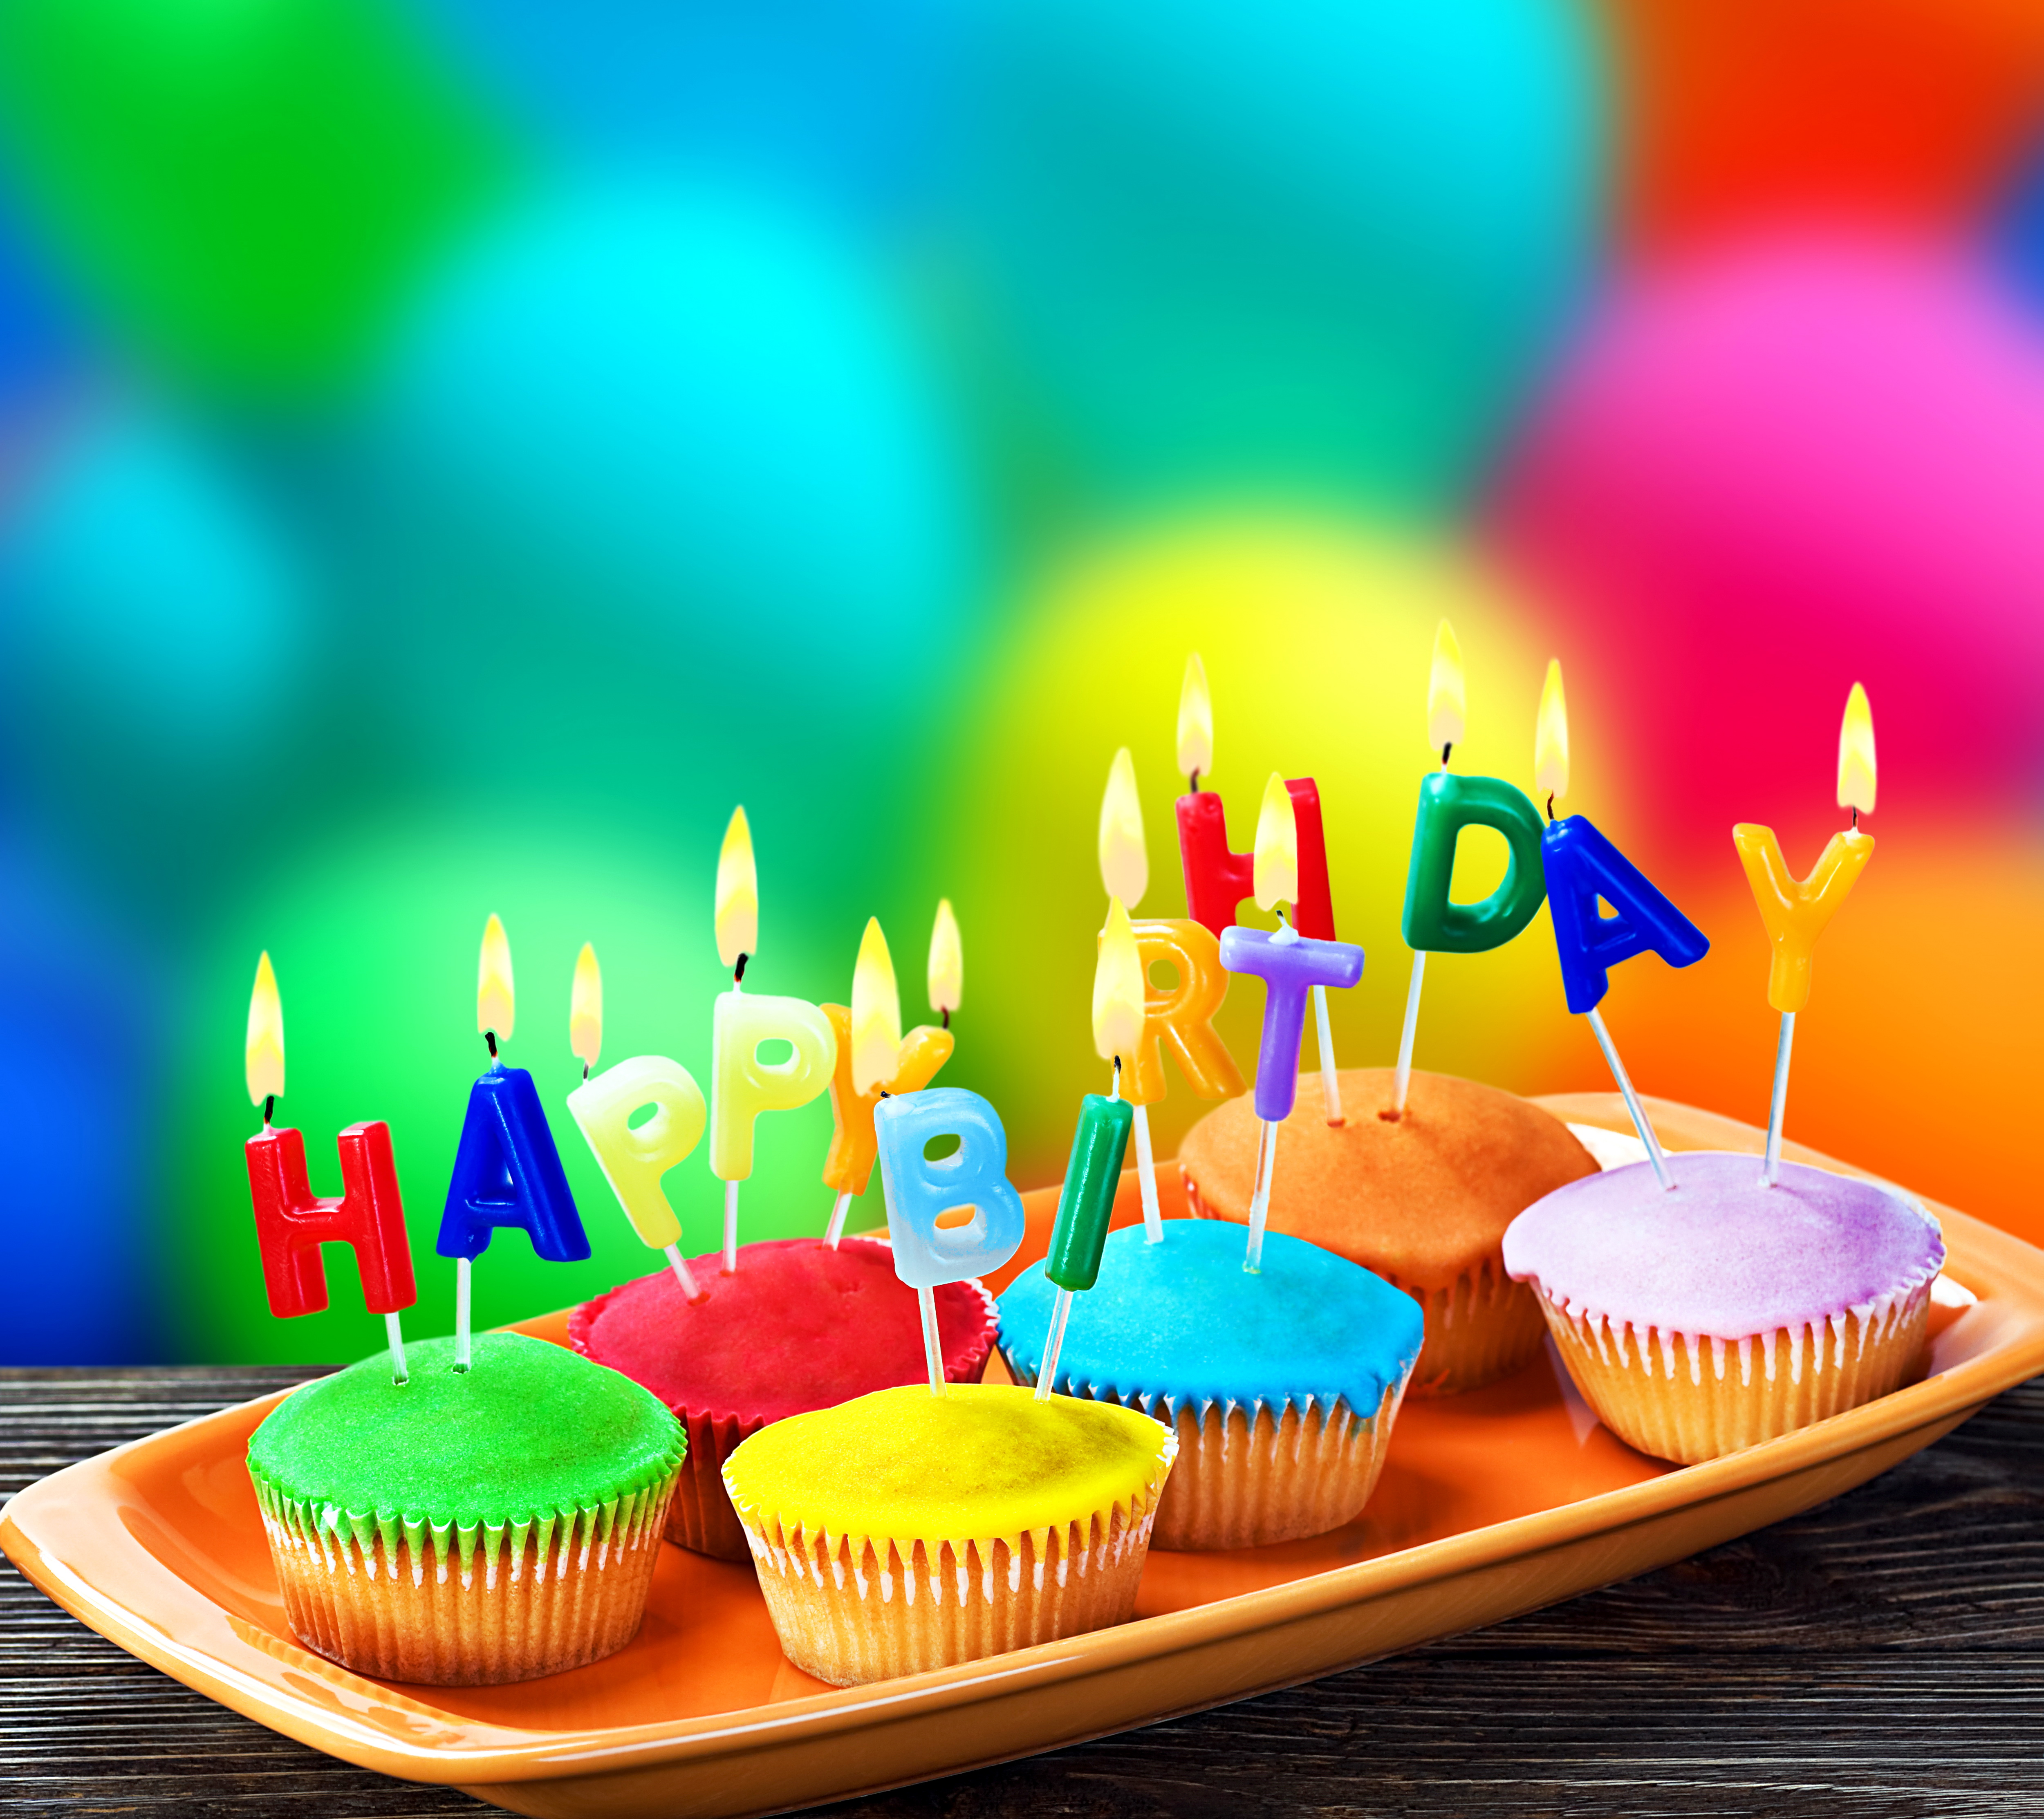 birthday background wallpapers hd ; happy-birthday-background-wallpaper-hd-12